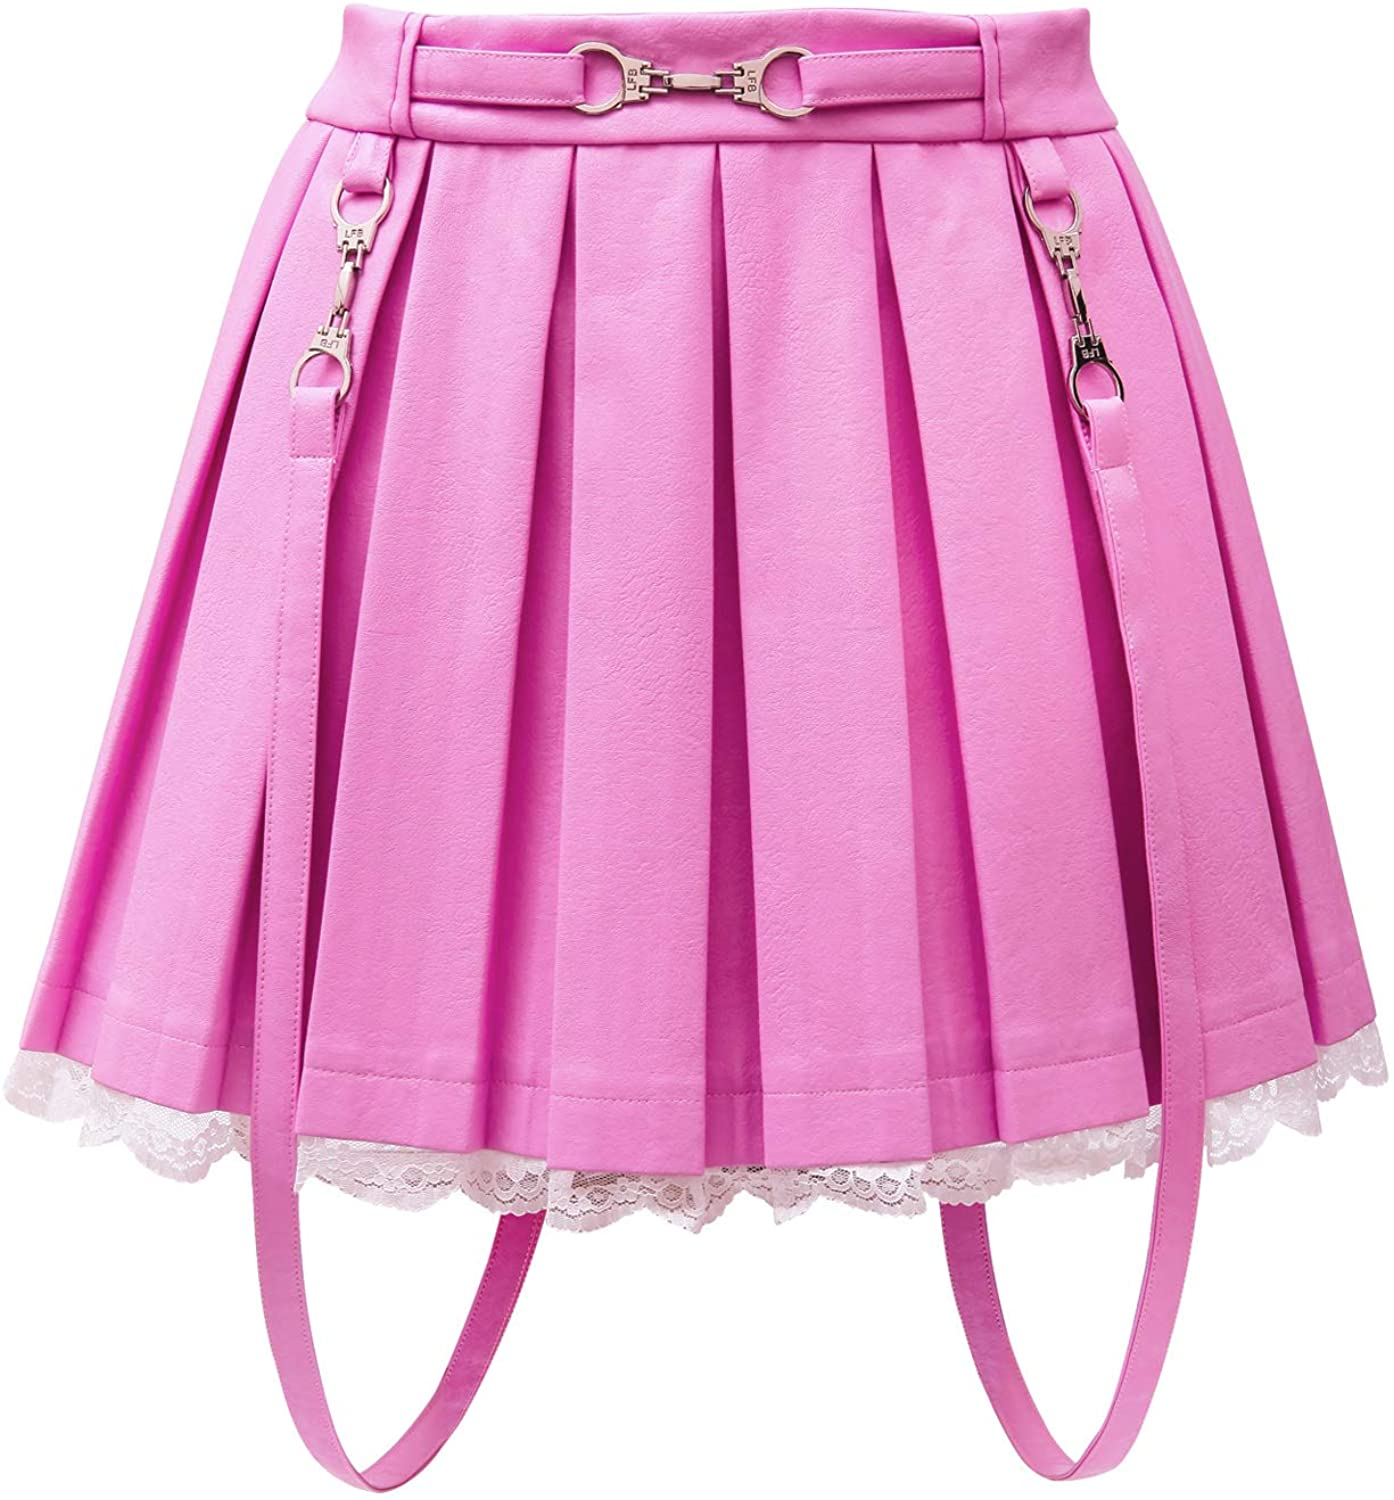 Littleforbig Women's A-Line Pleated Faux Leather Flared Casual Lace Trim Mini Skirts - Troublemaker